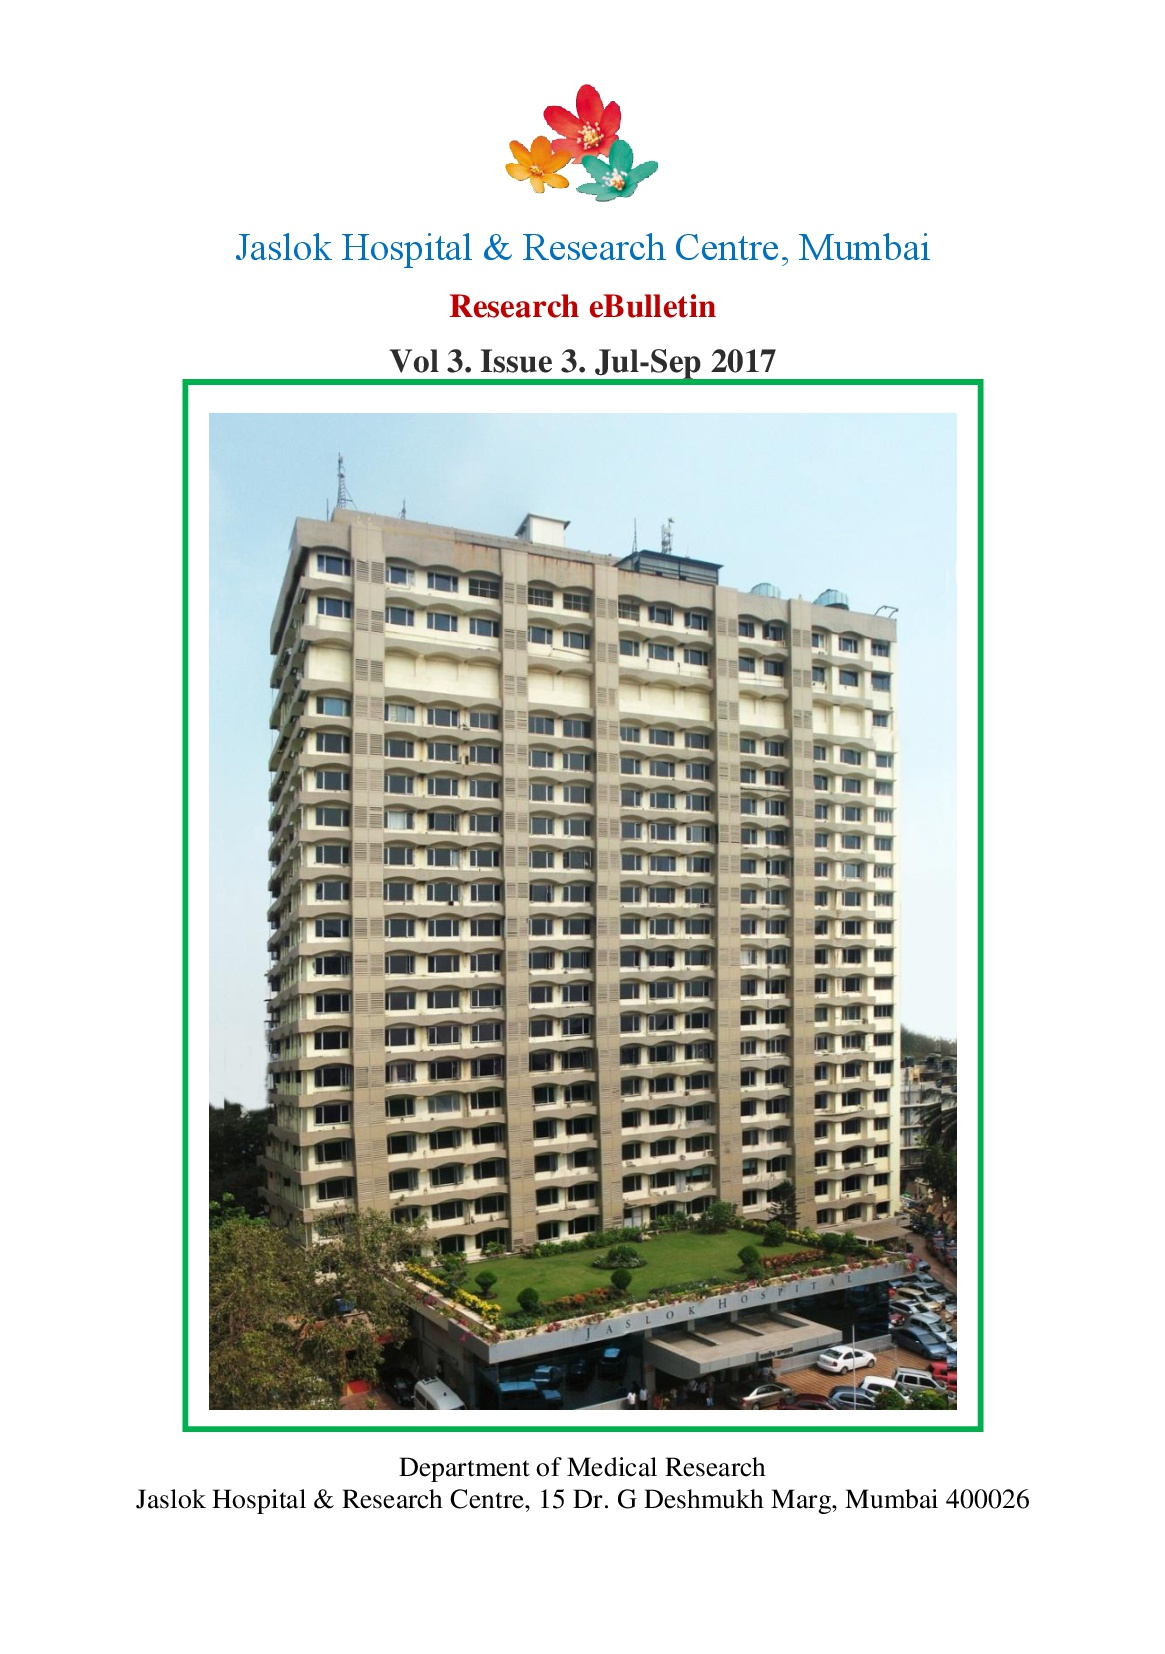 Jaslok Hospital Medical Research Bulletin - July - Sep 2017.jpg